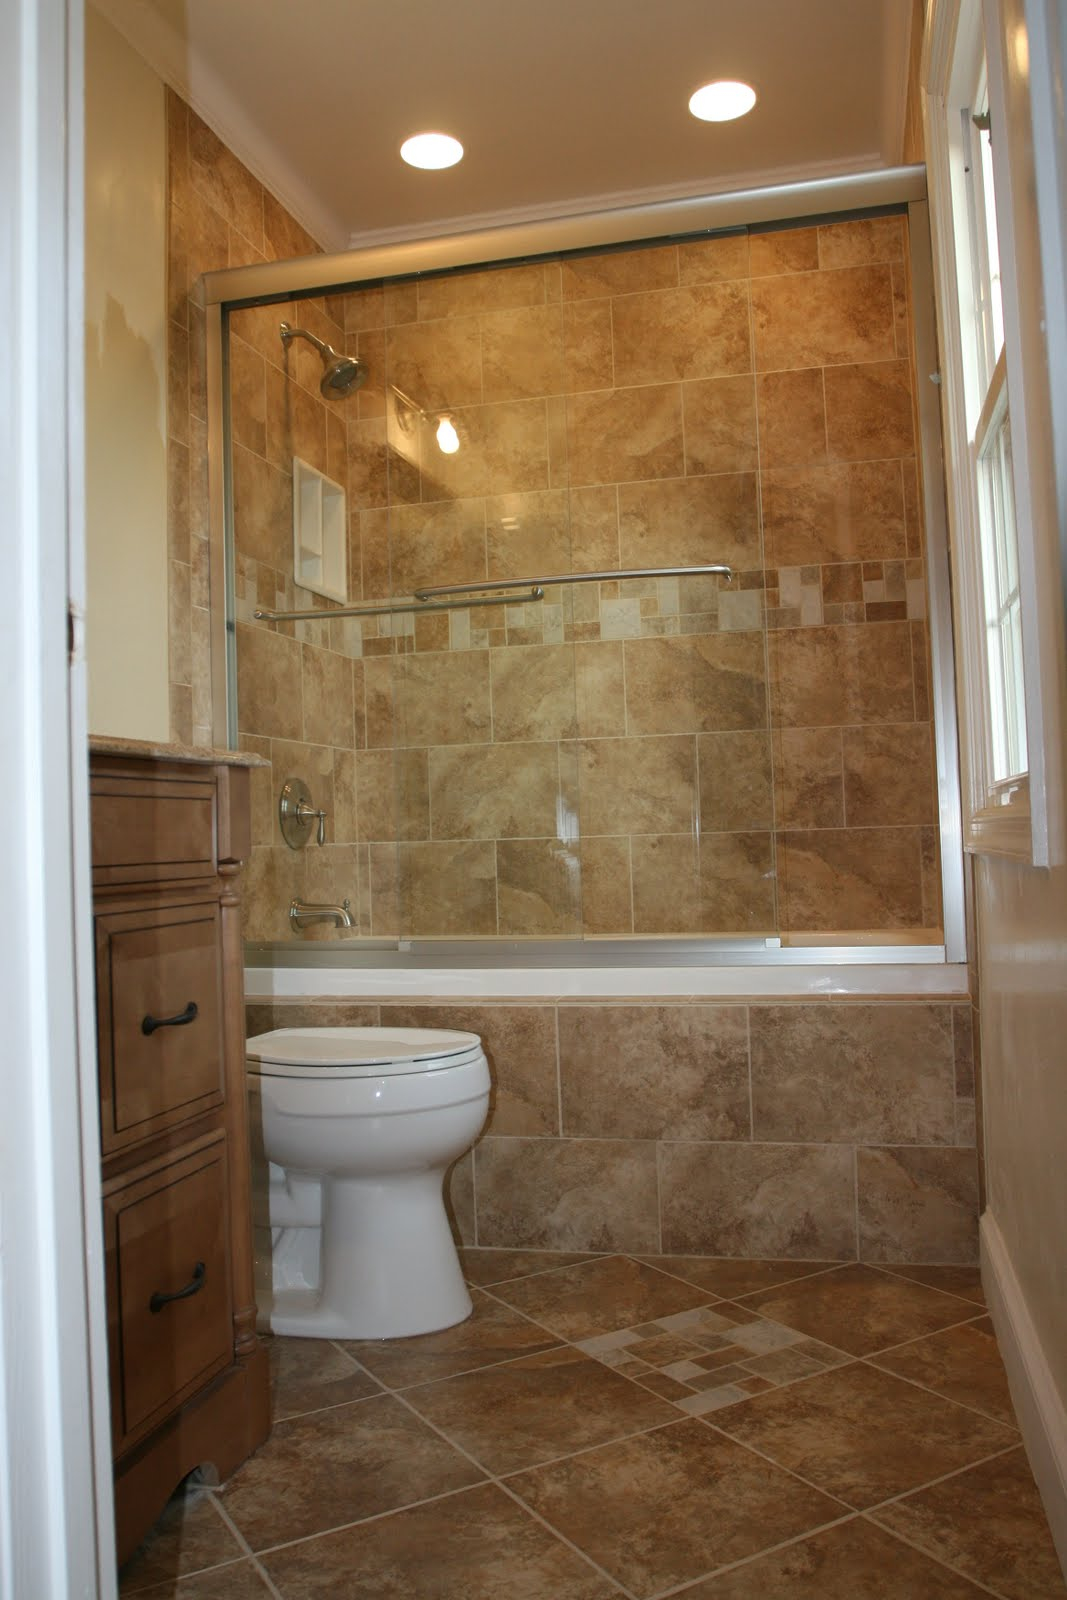 bathroom remodeling design ideas tile shower niches On bathroom remodel ideas with bathtub